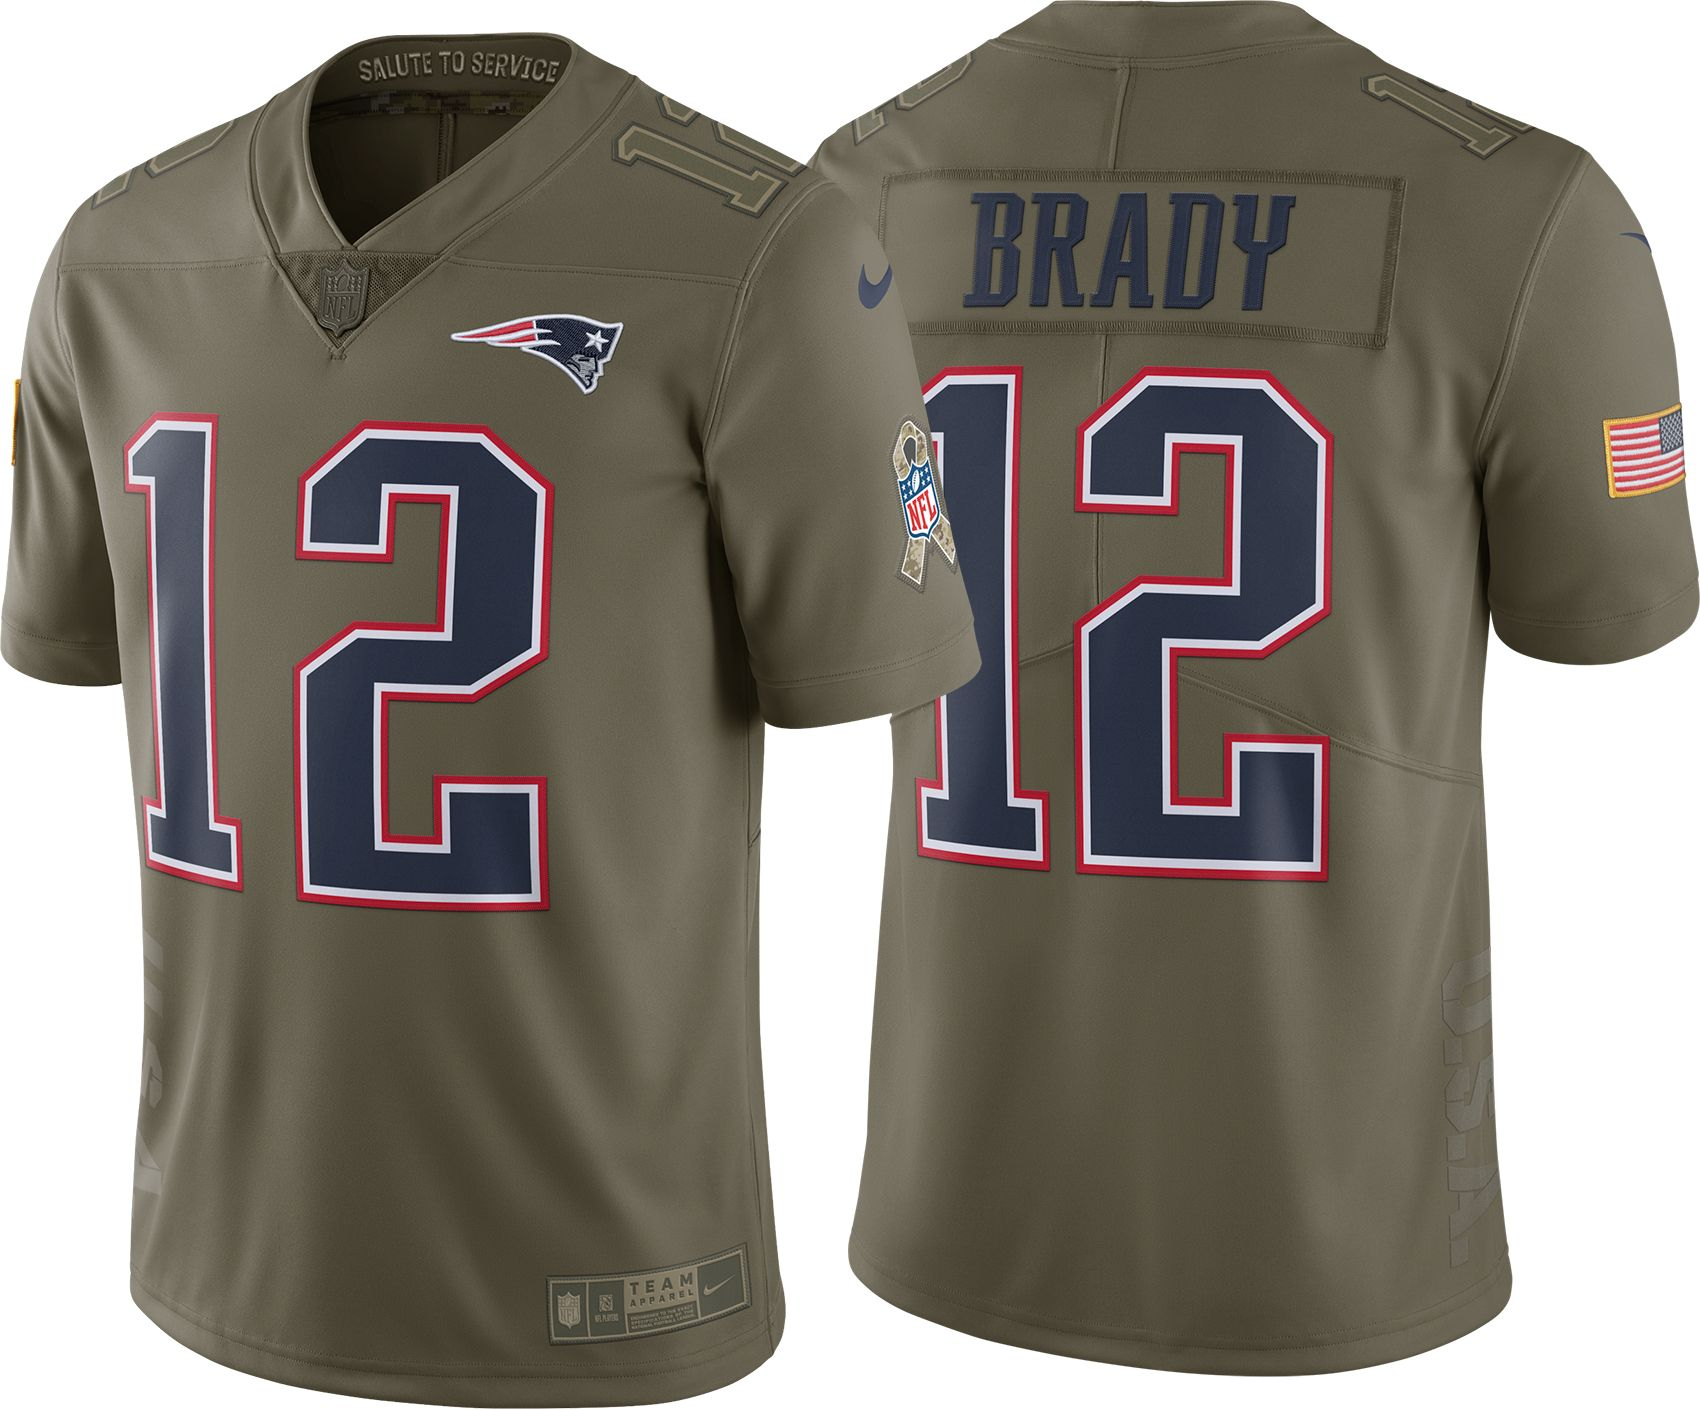 sale retailer 2347e 804ea Would you rock the NFL salute to service jersey? | Sports ...